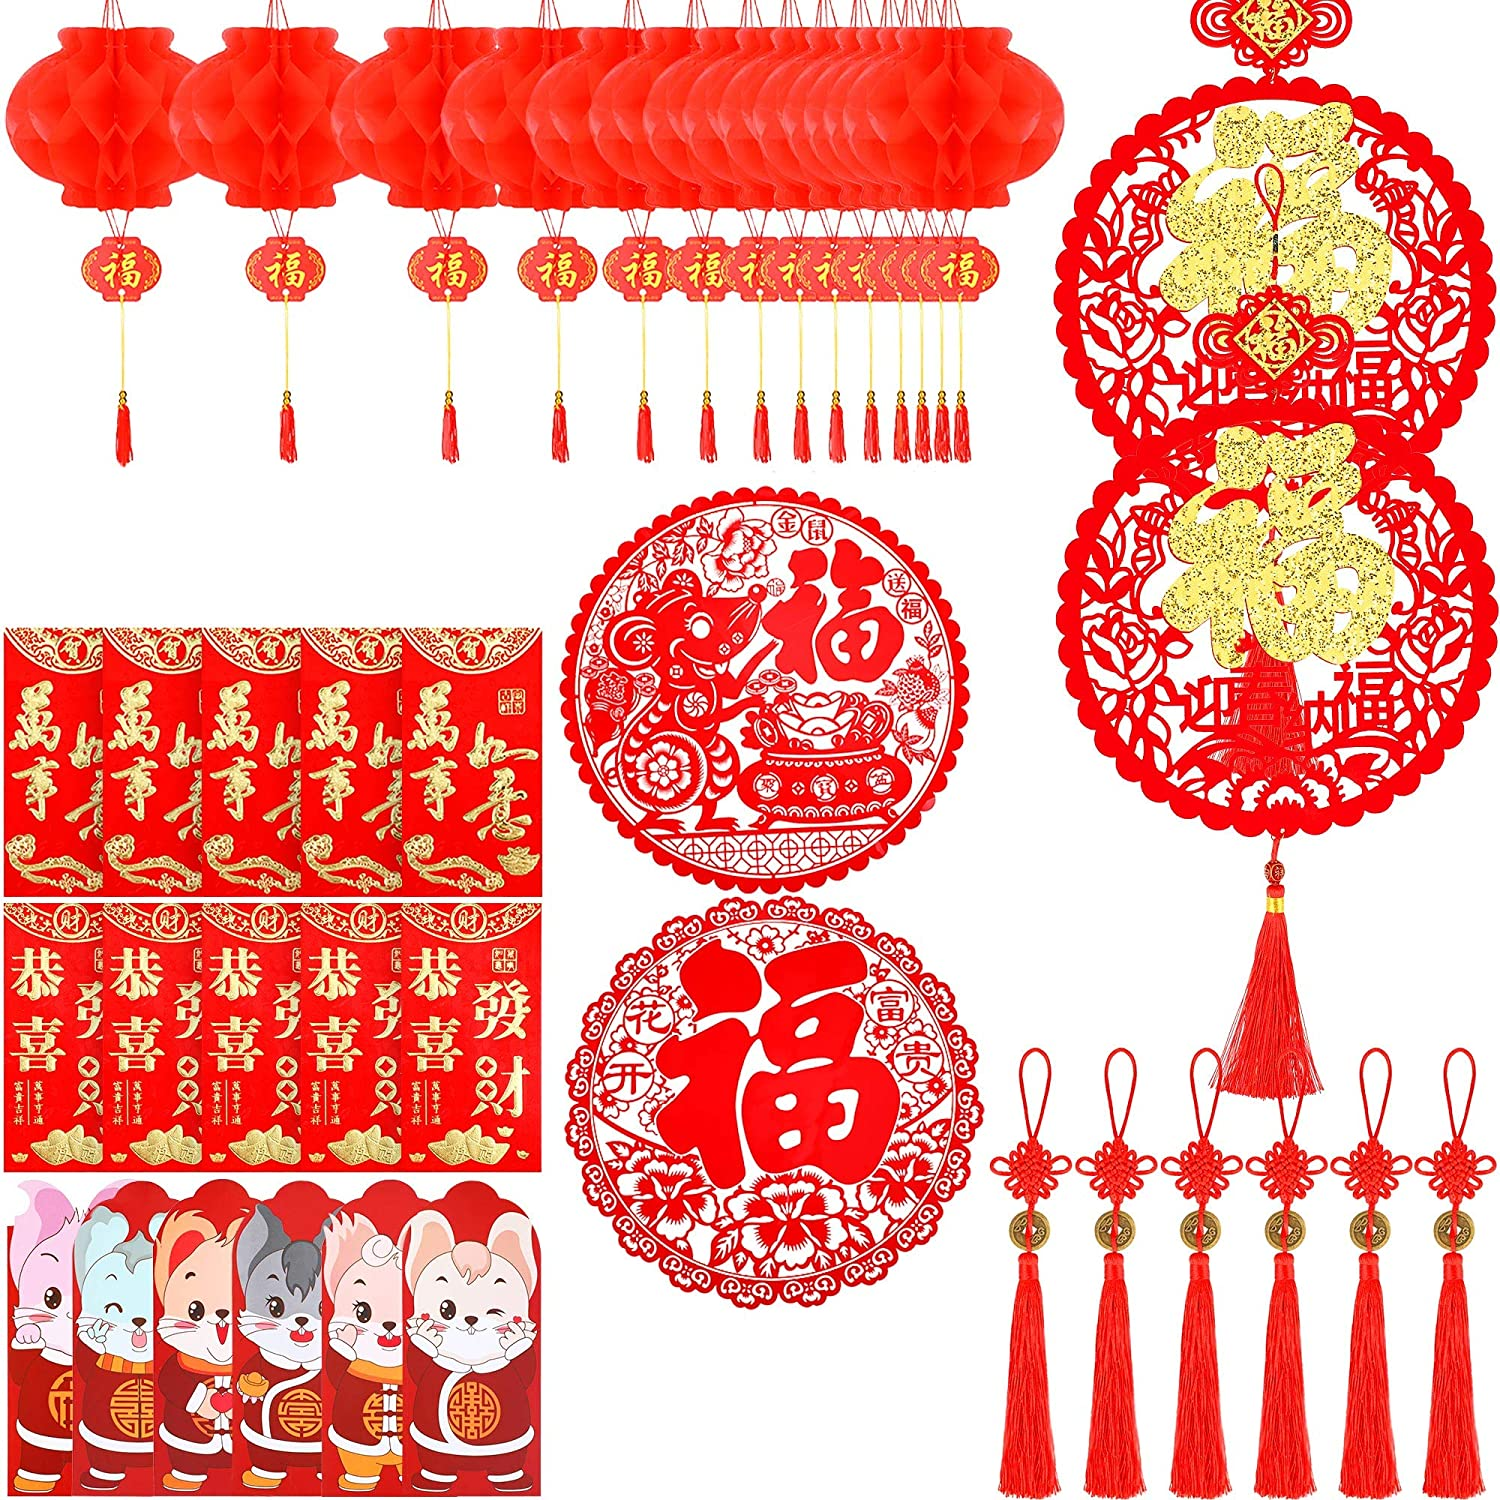 48 Pieces Chinese New Year Decorations Red Paper Lanterns Chinese Red Envelops Fu Character Window Stickers Pendants Chinese Knot Tassel Decorations Amazon Com